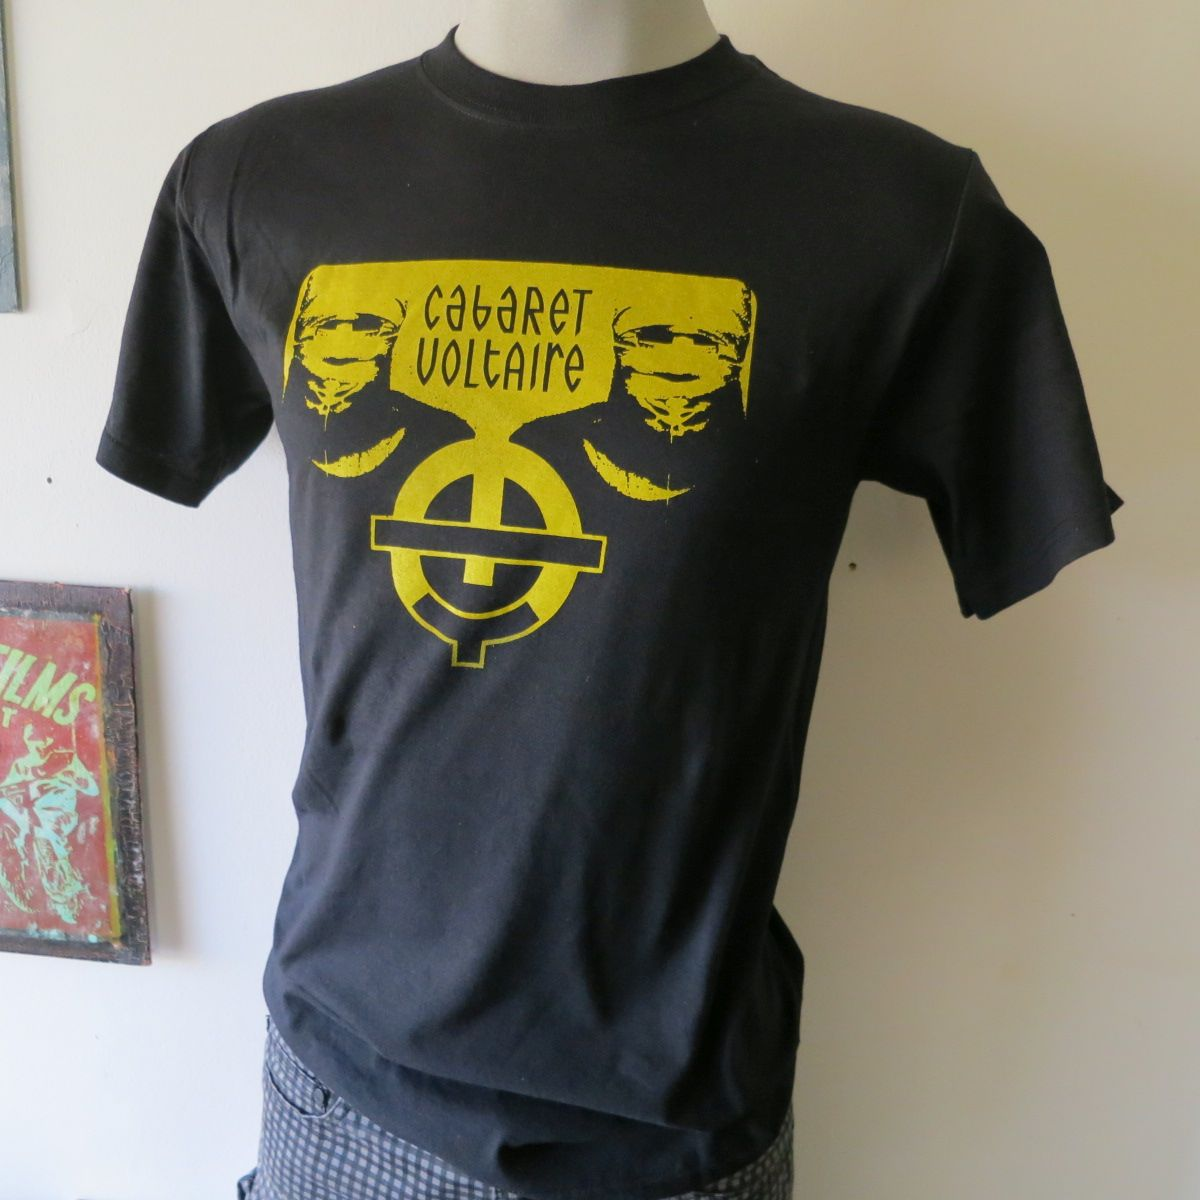 Cabaret voltaire tee t shirt screen print short sleeve for Vintage screen print t shirts